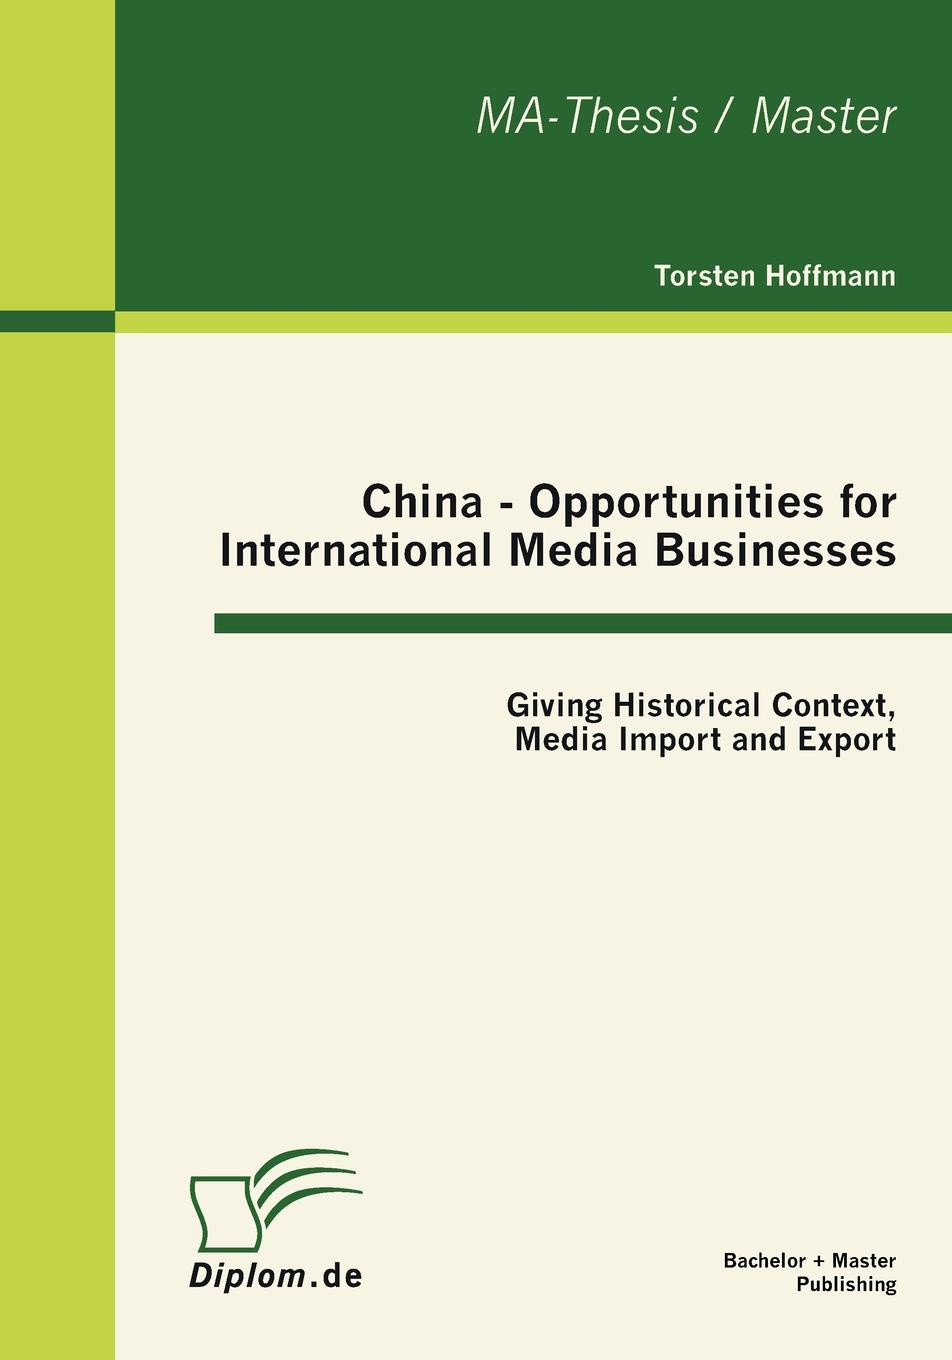 Torsten Hoffmann China - Opportunities for International Media Businesses. Giving Historical Context, Media Import and Export halil kiymaz market microstructure in emerging and developed markets price discovery information flows and transaction costs